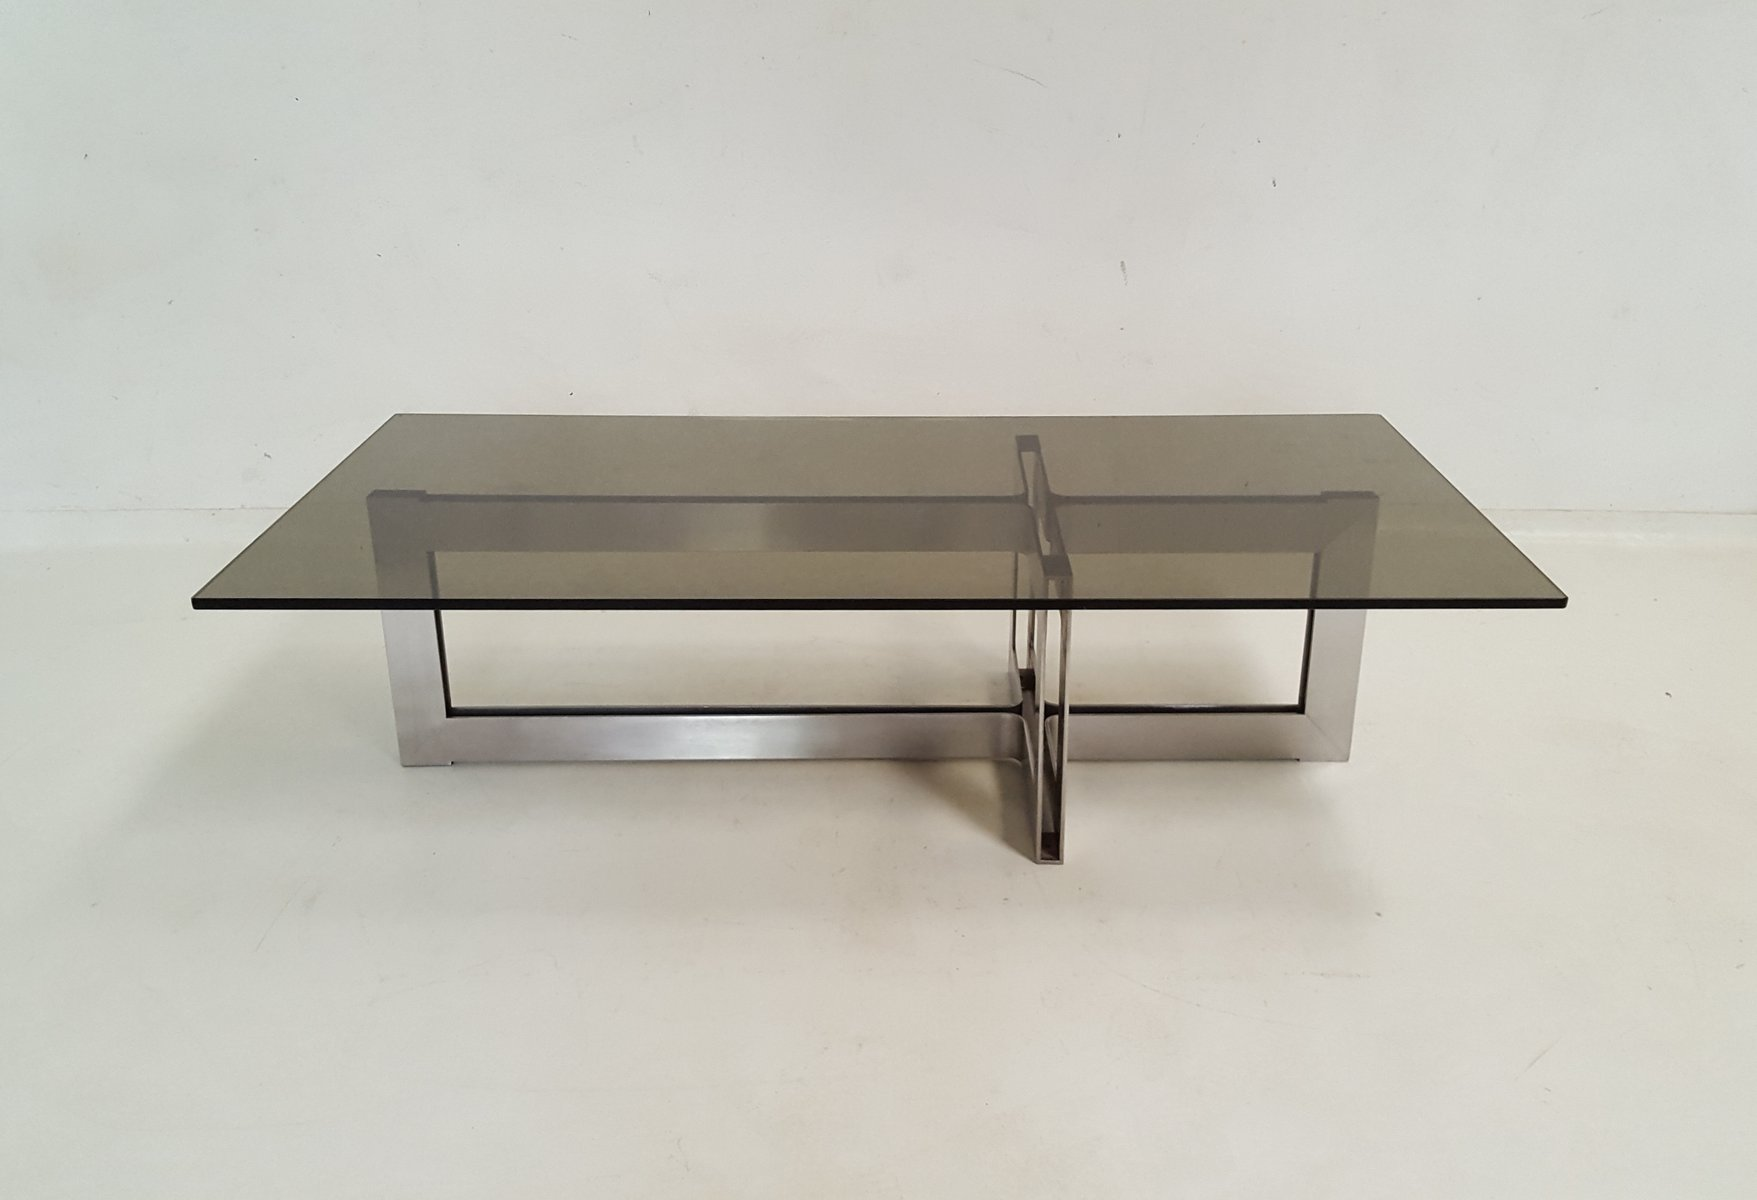 Stainless Steel And Glass Coffee Table 1970s For Sale At Pamono